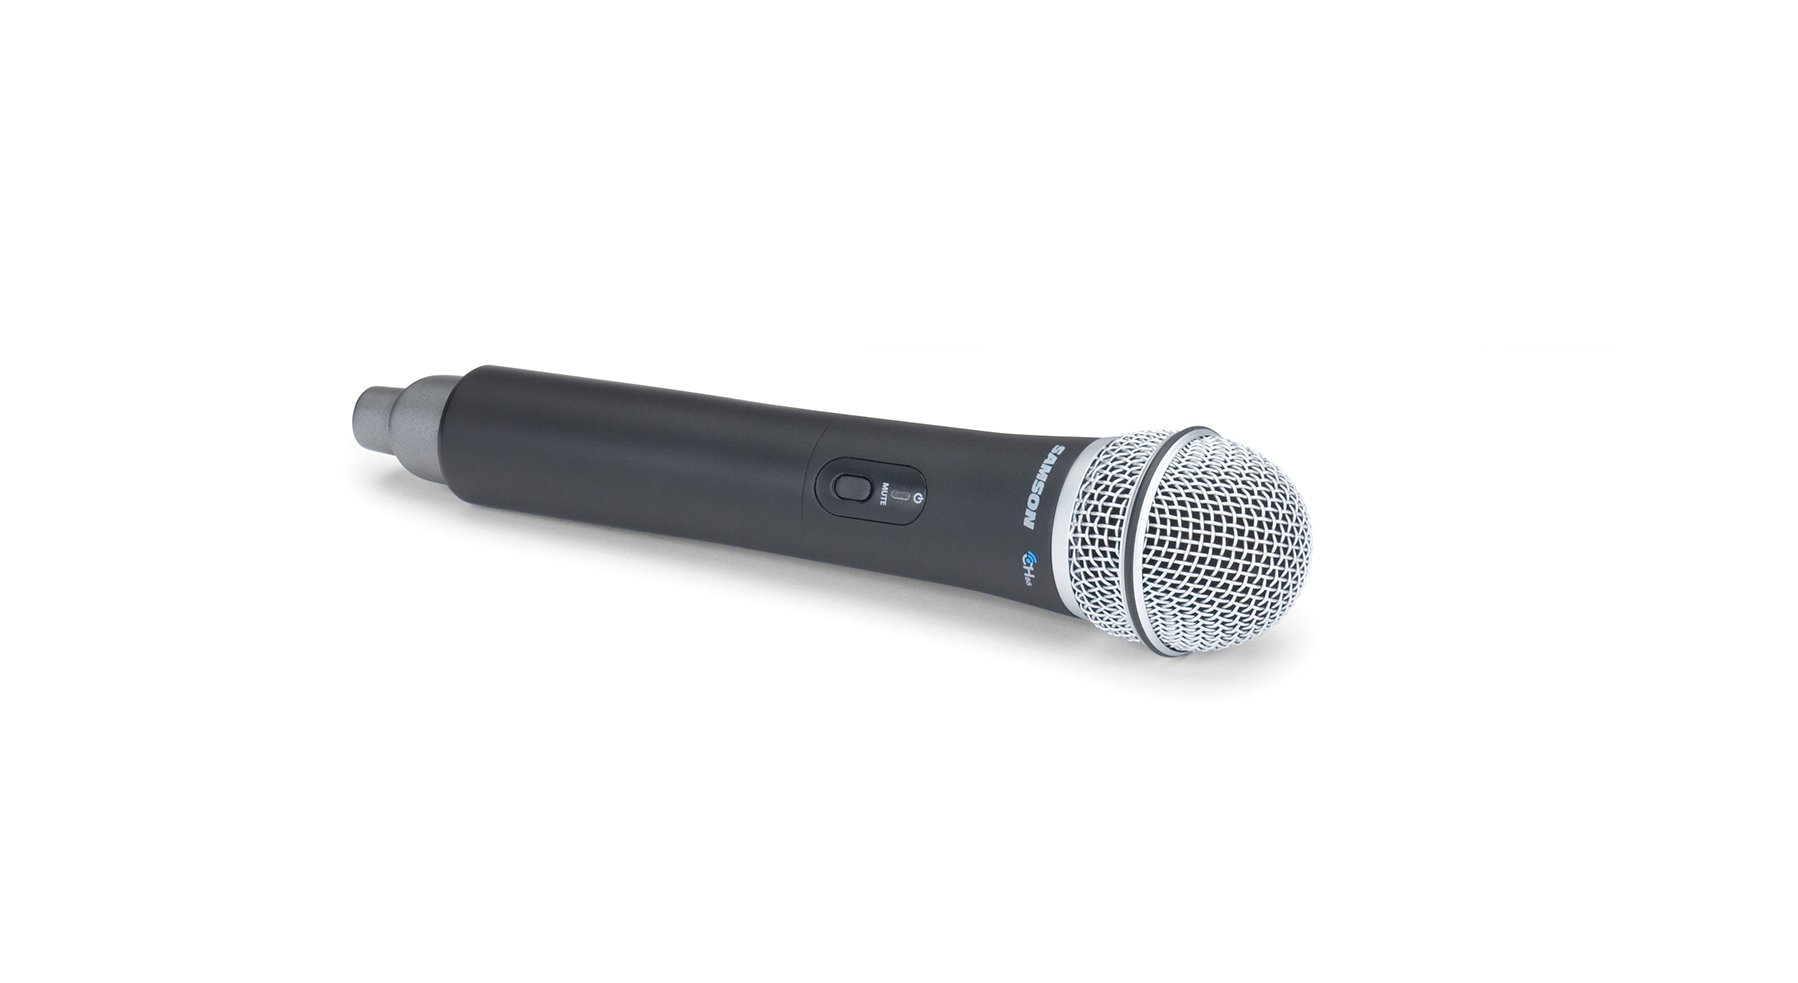 Concert 288 Handheld Microphone/Transmitter Only - H Band, Channel A